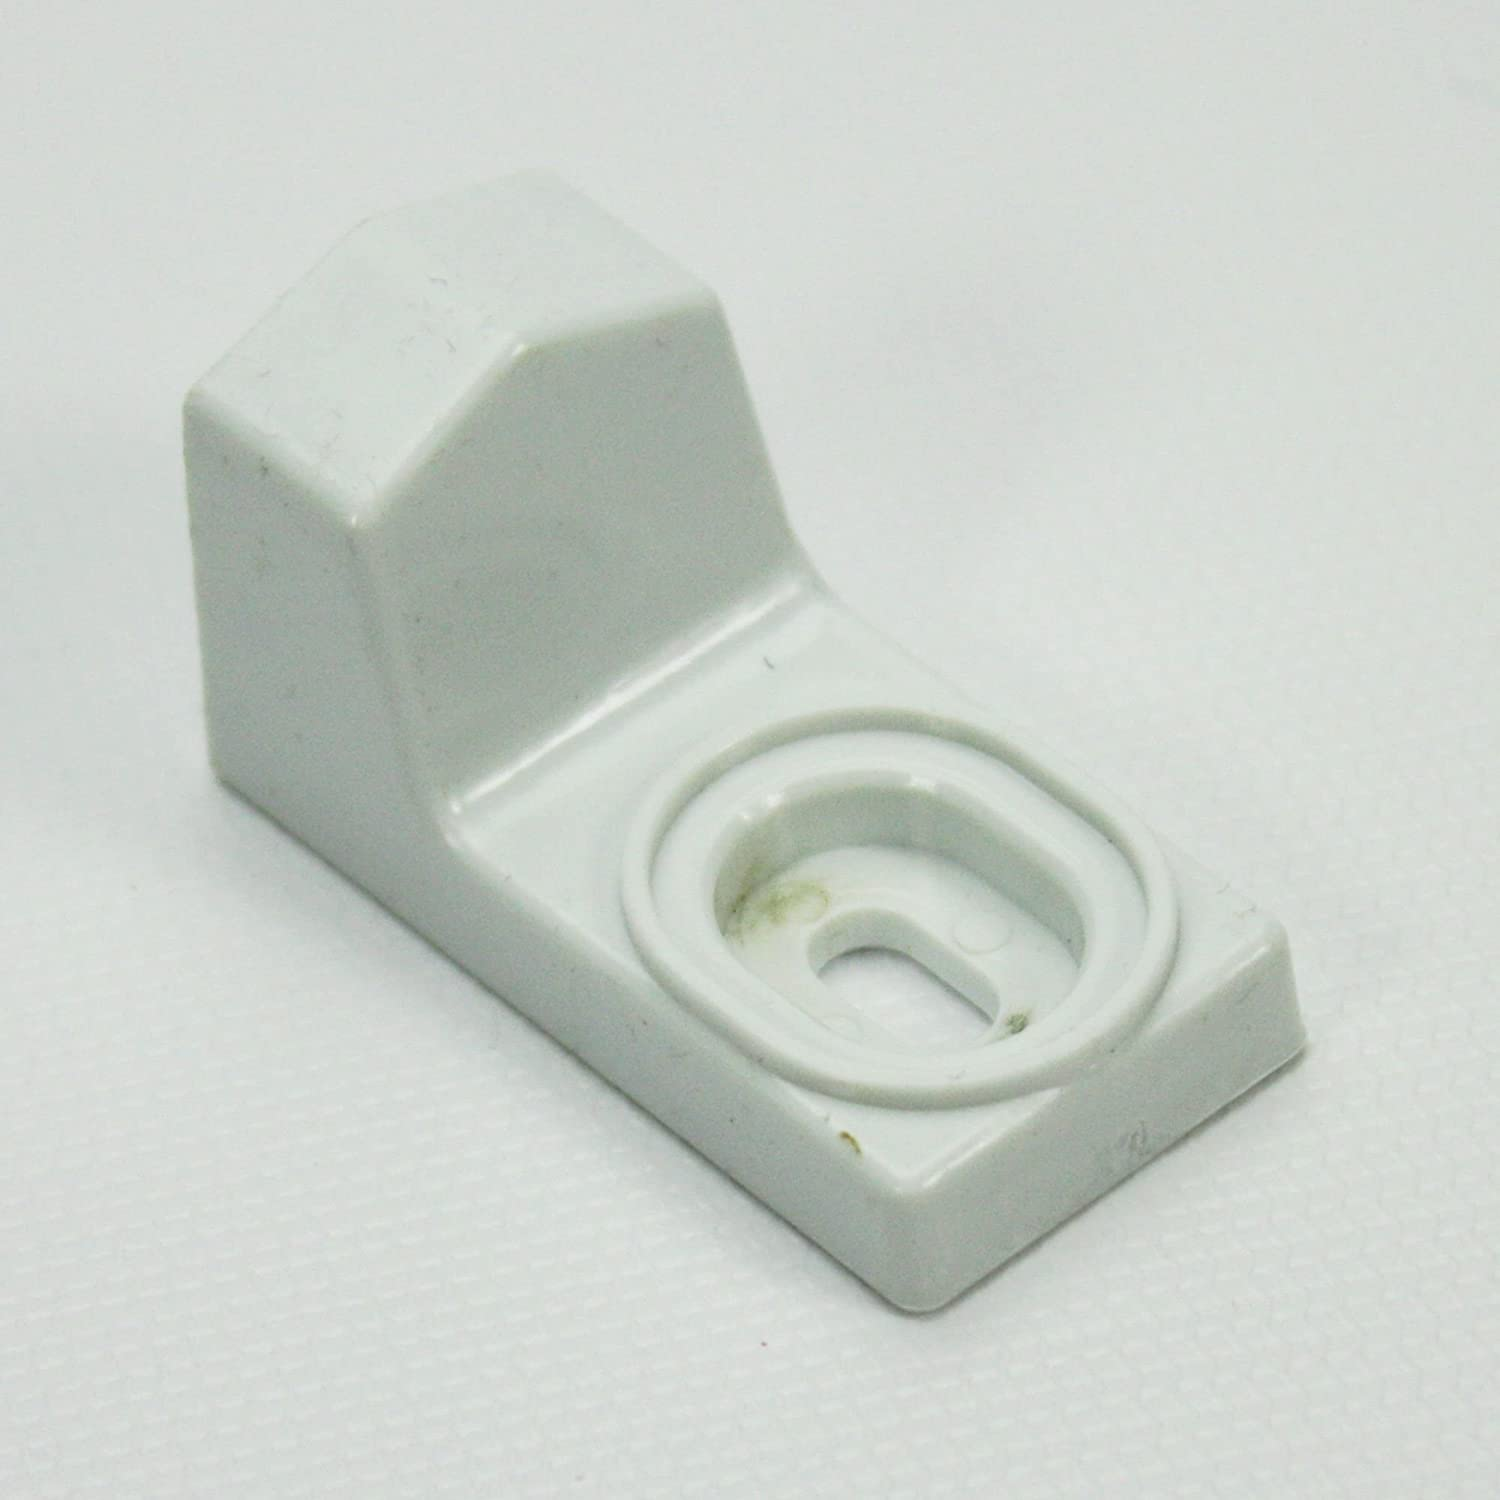 Refrigerator Handle White End Cap for Whirlpool, Sears, Kenmore, 2183141